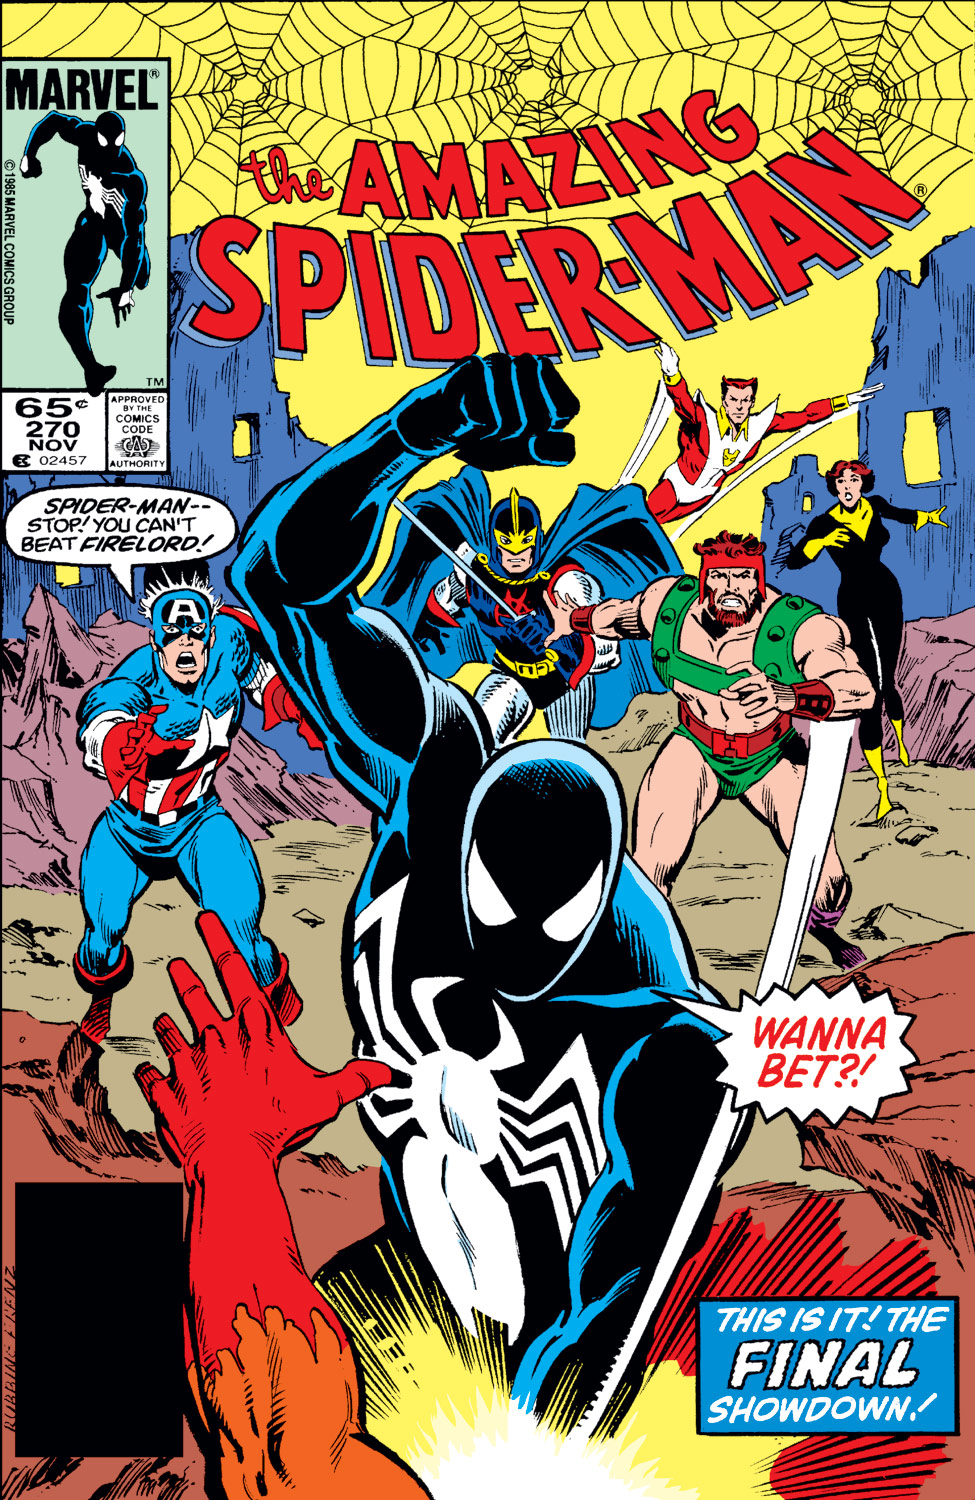 The Amazing Spider-Man (1963) #270